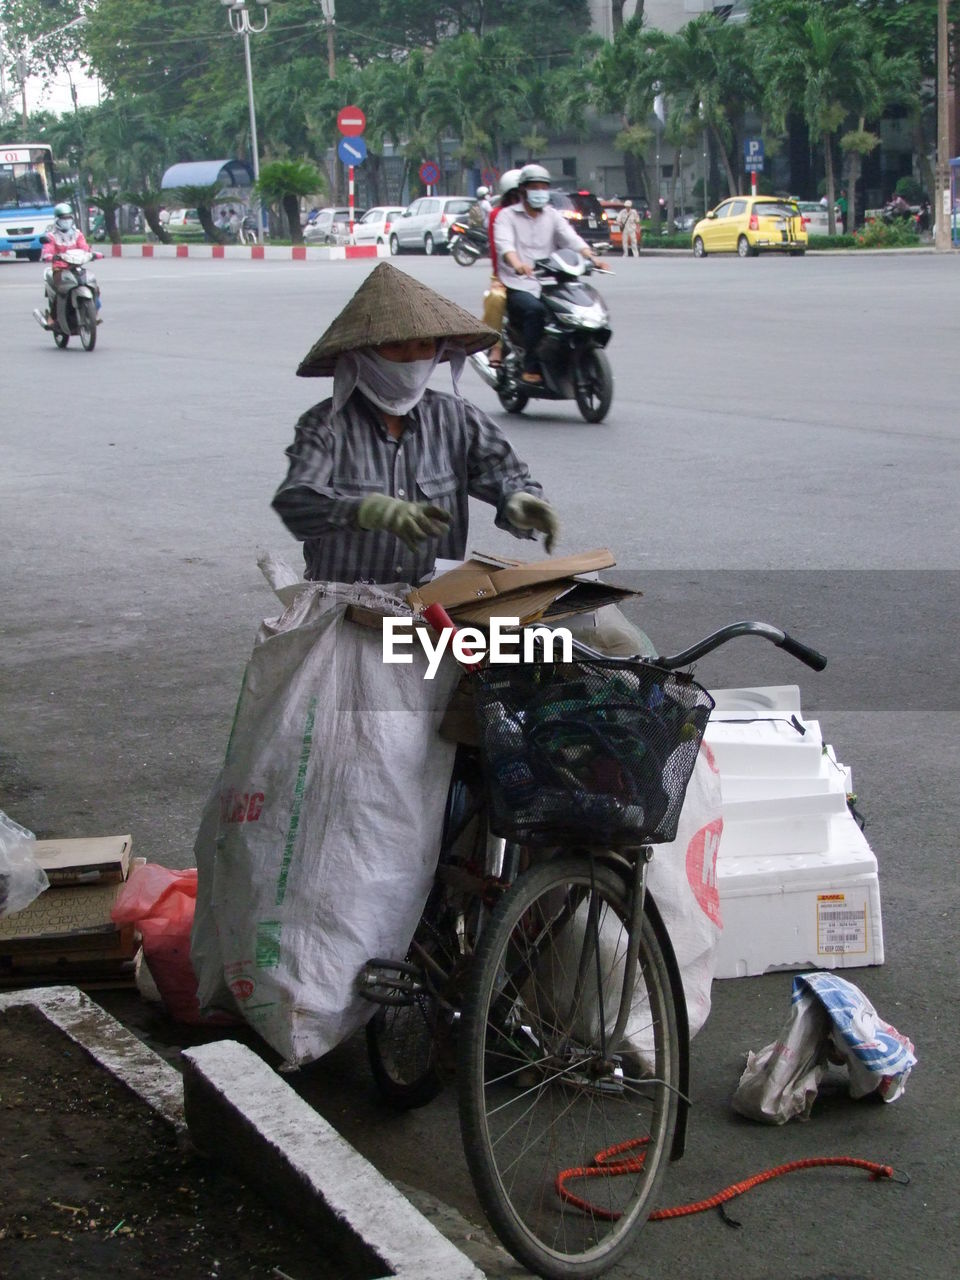 Man With Bicycle By Sacks On Road